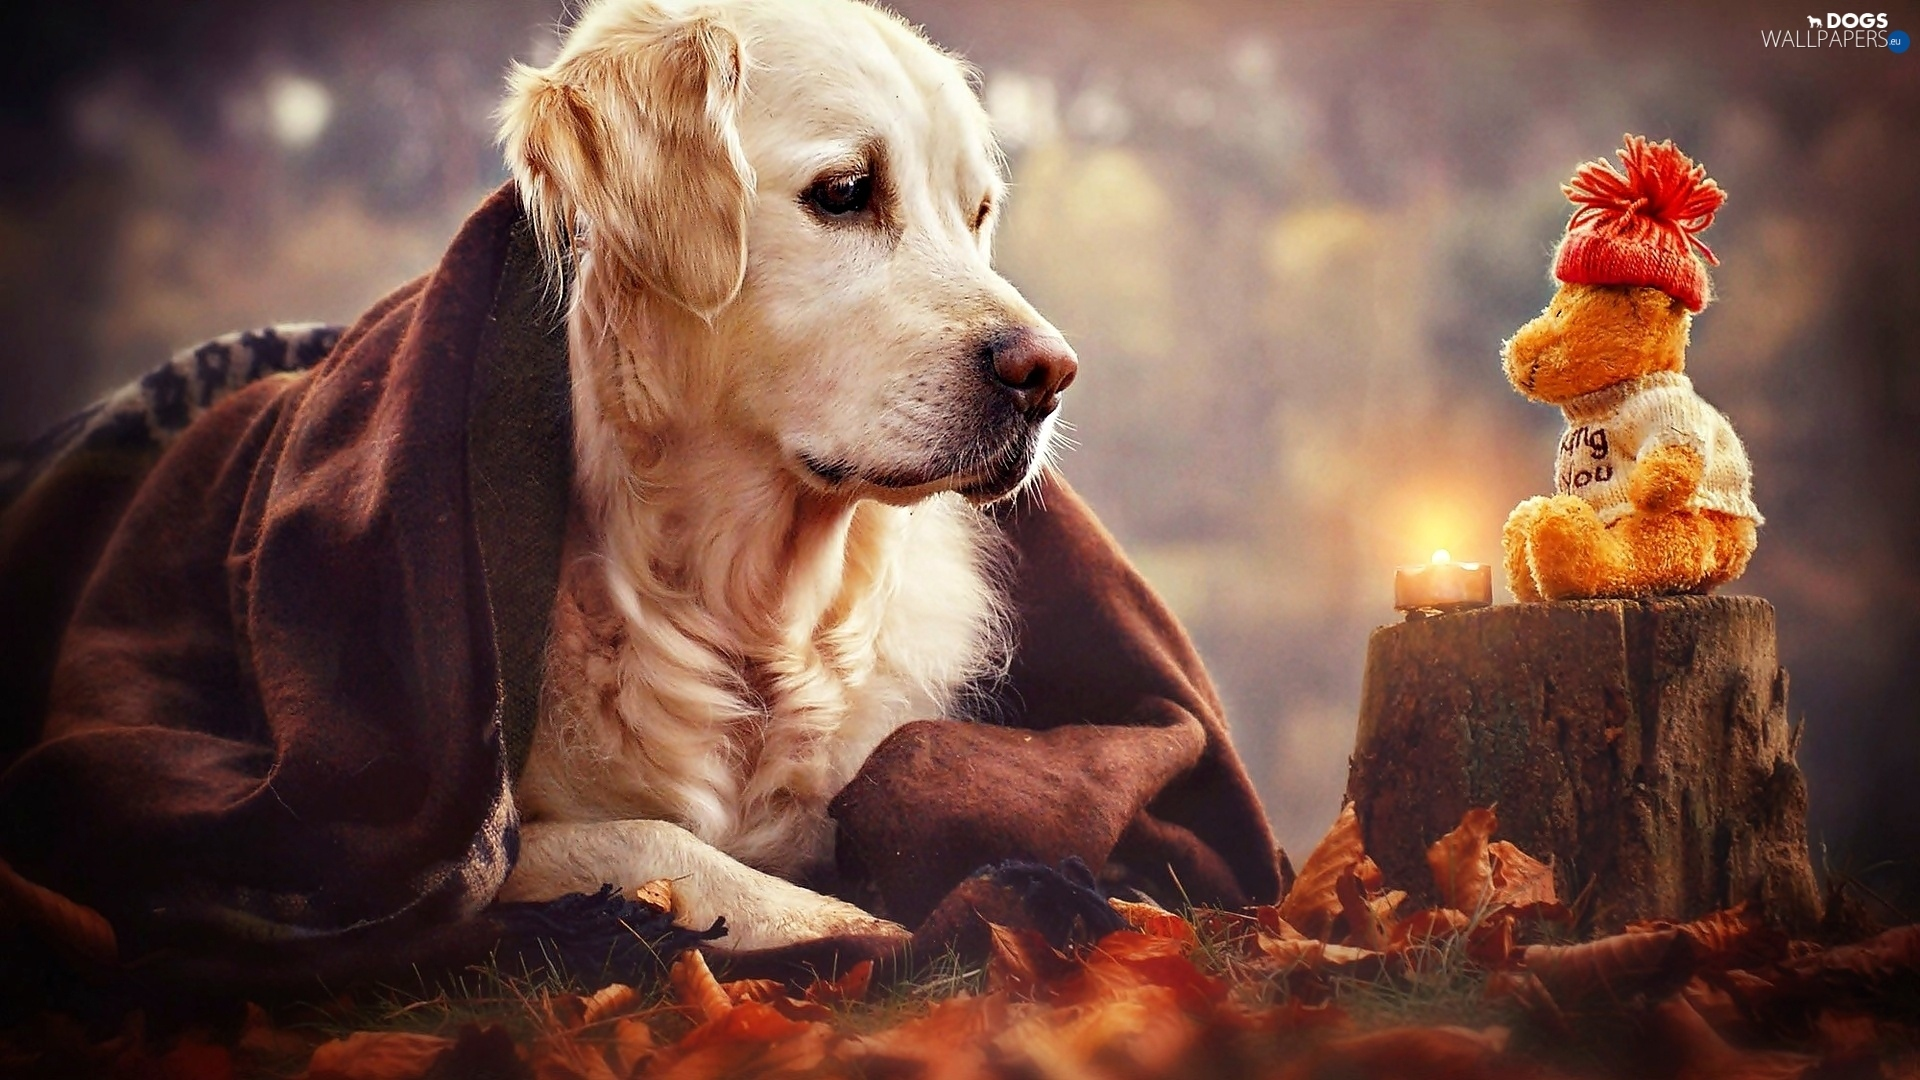 Candle Toy Teddy Bear Dog Trunk Golden Retriever Dogs Wallpapers 1920x1080